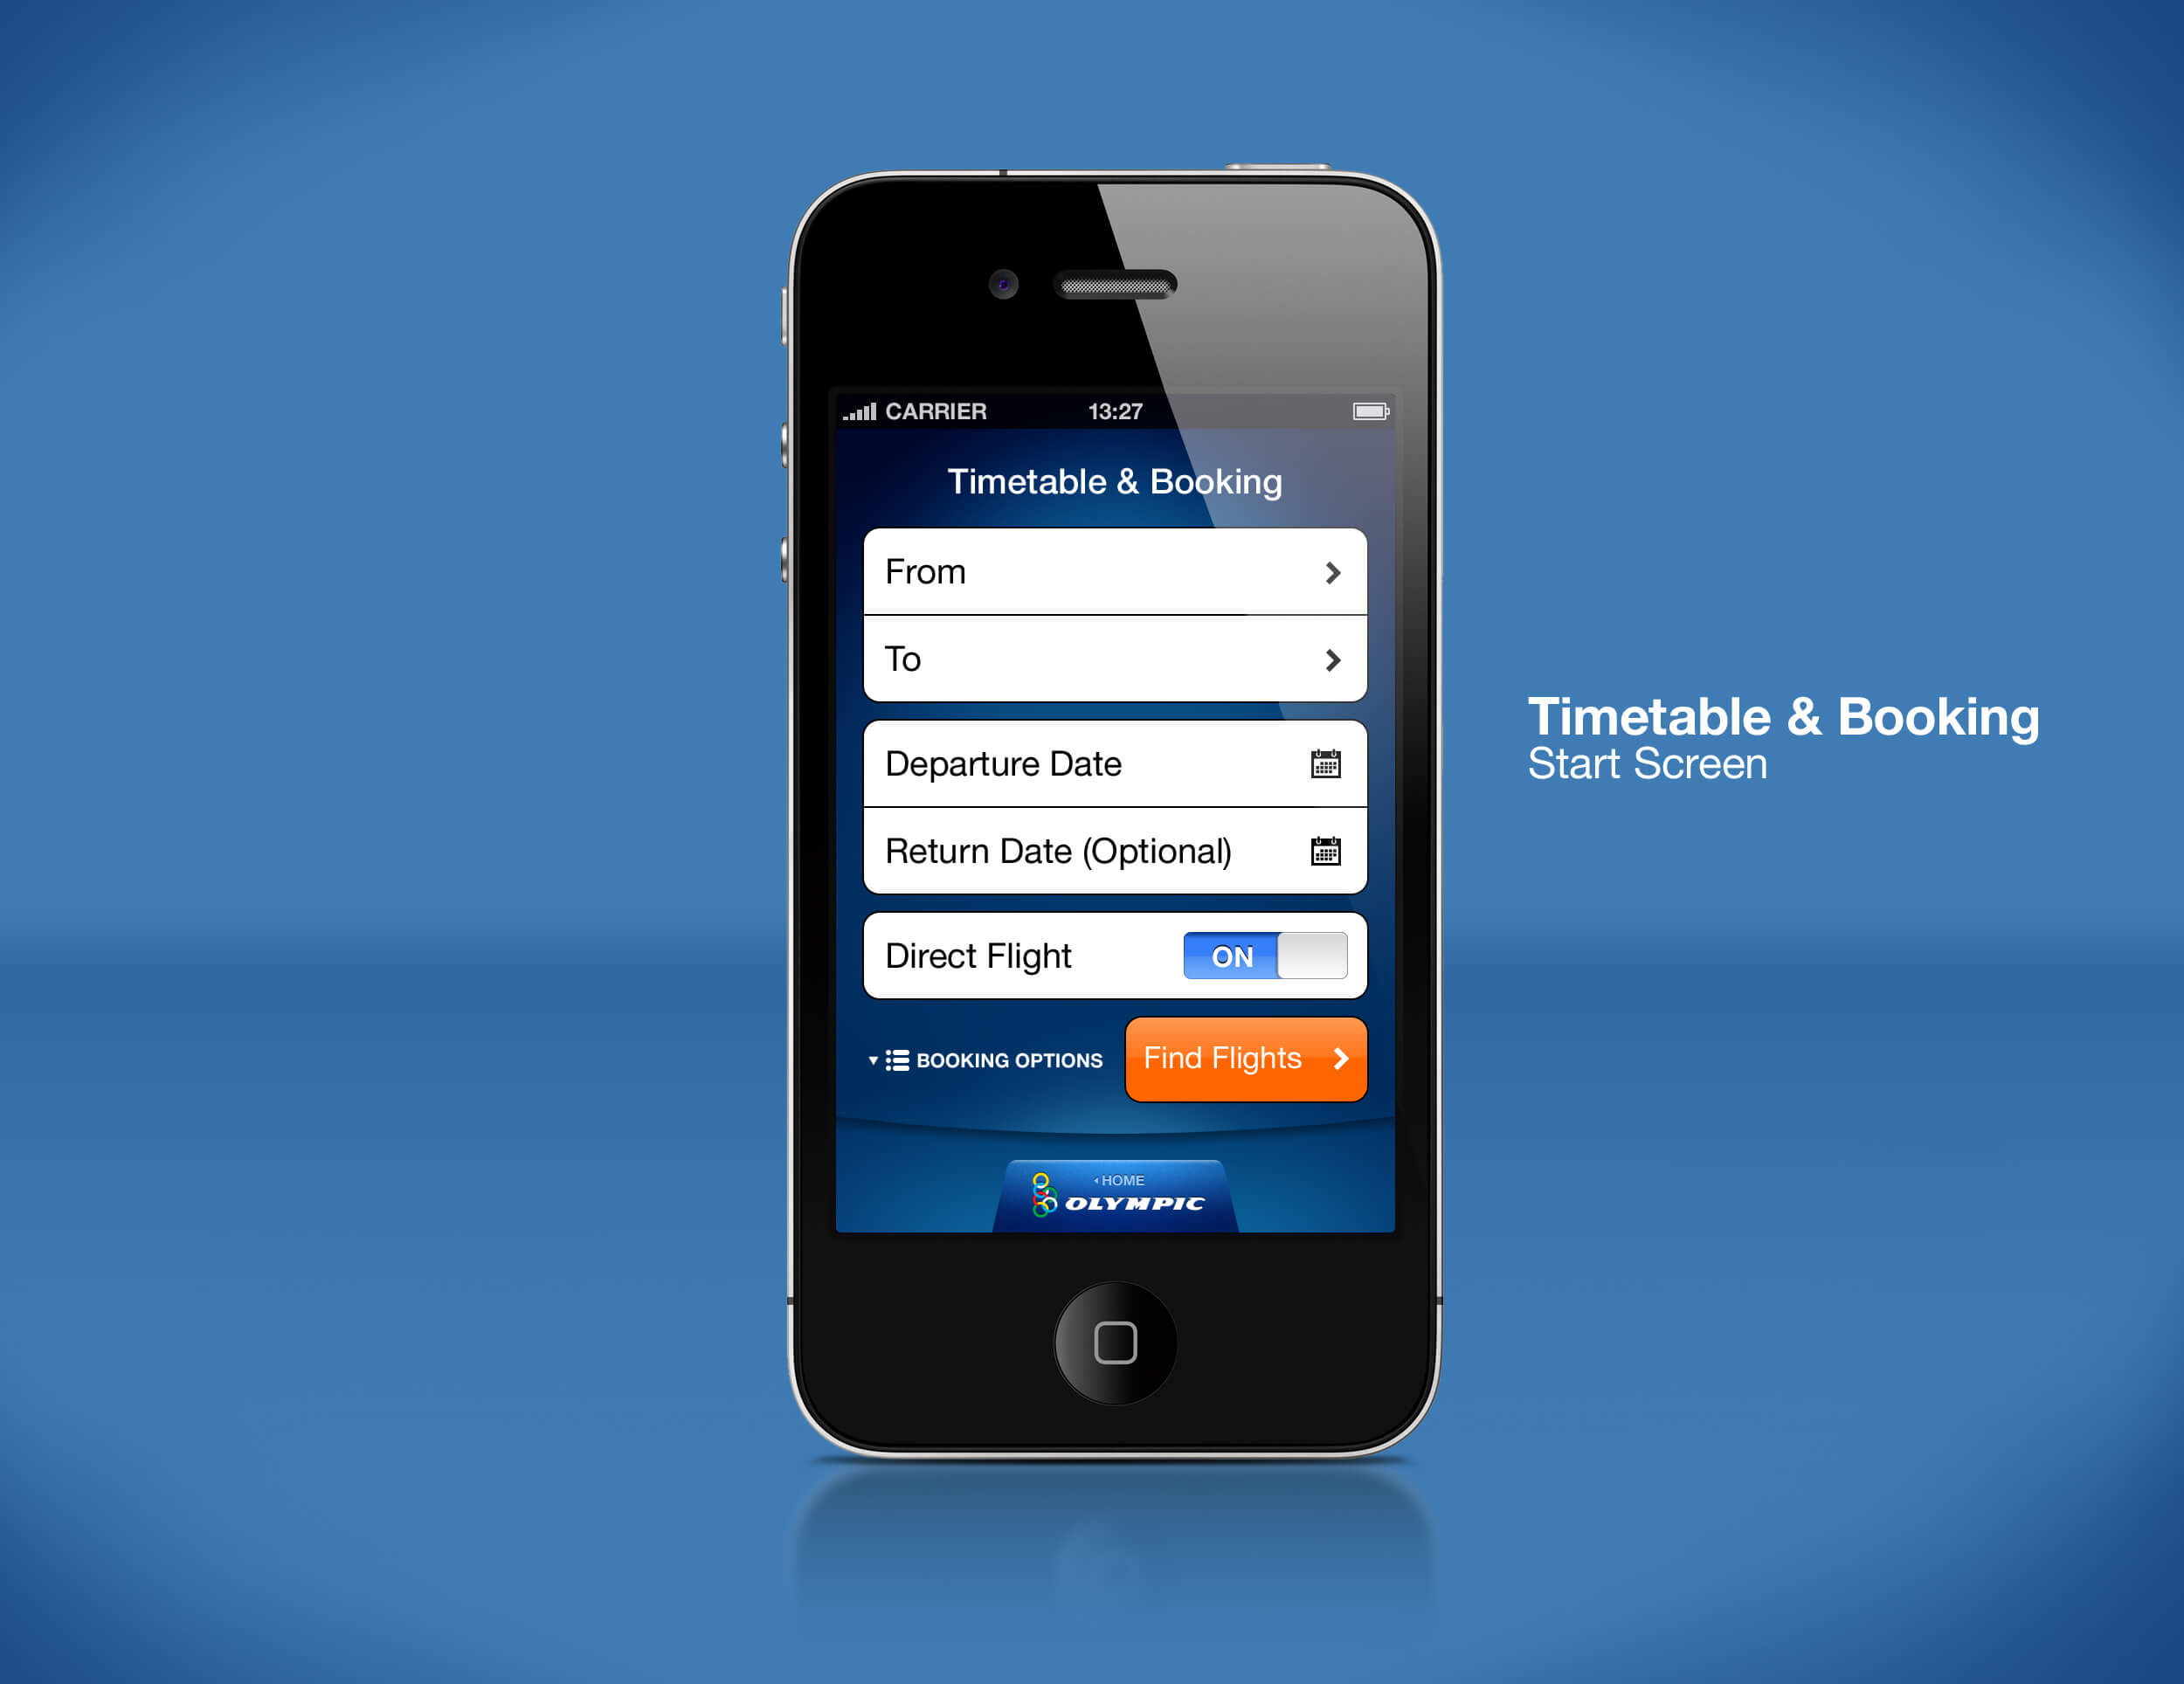 Airline Mobile App Timetable & Booking